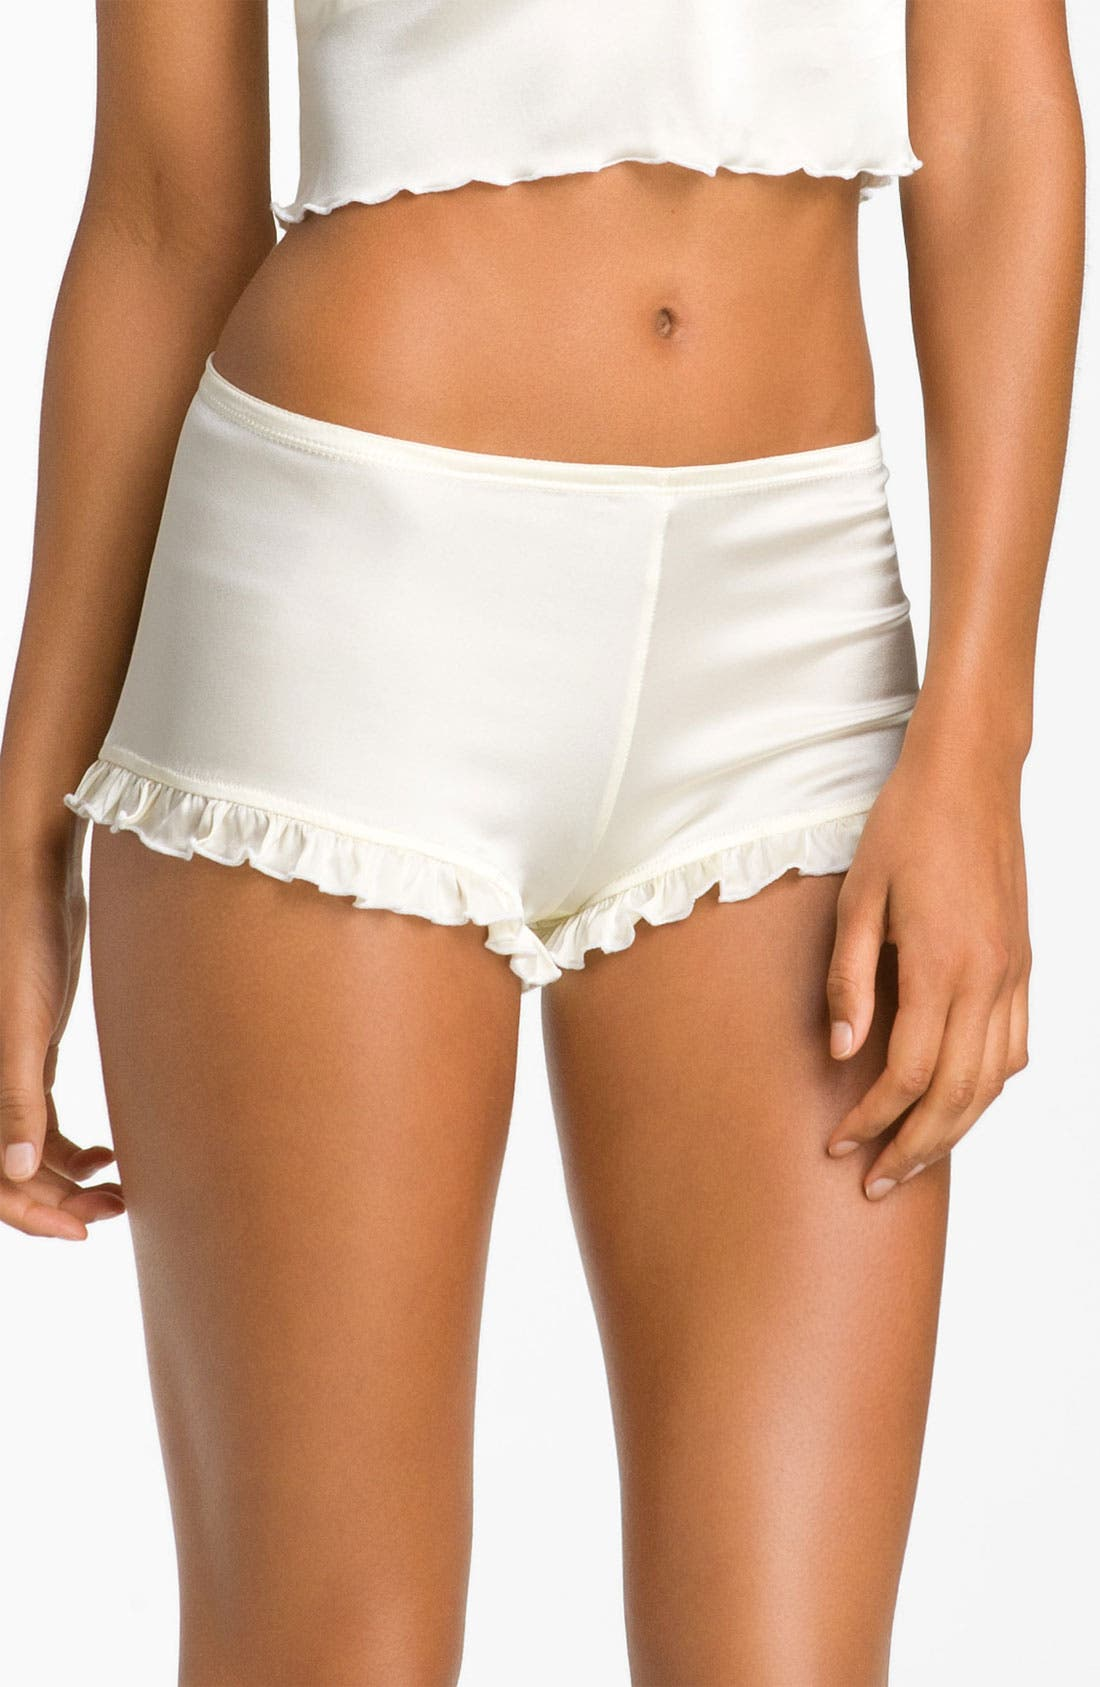 Alternate Image 1 Selected - Zinke 'Tulsa' Silk Charmeuse Boyshorts